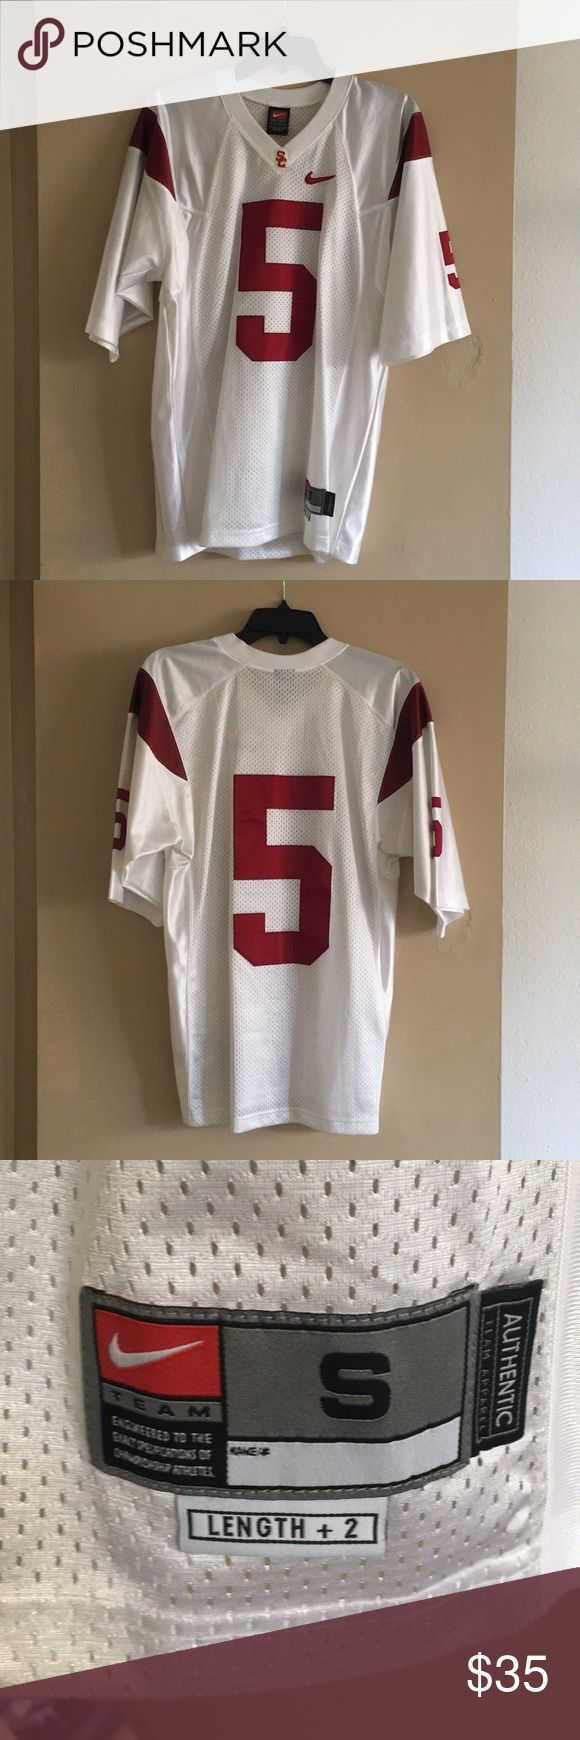 Nike USC #5 Jersey might as well be new. worn twice, 10 years ago. stitched numbers, not screen printed Nike Shirts